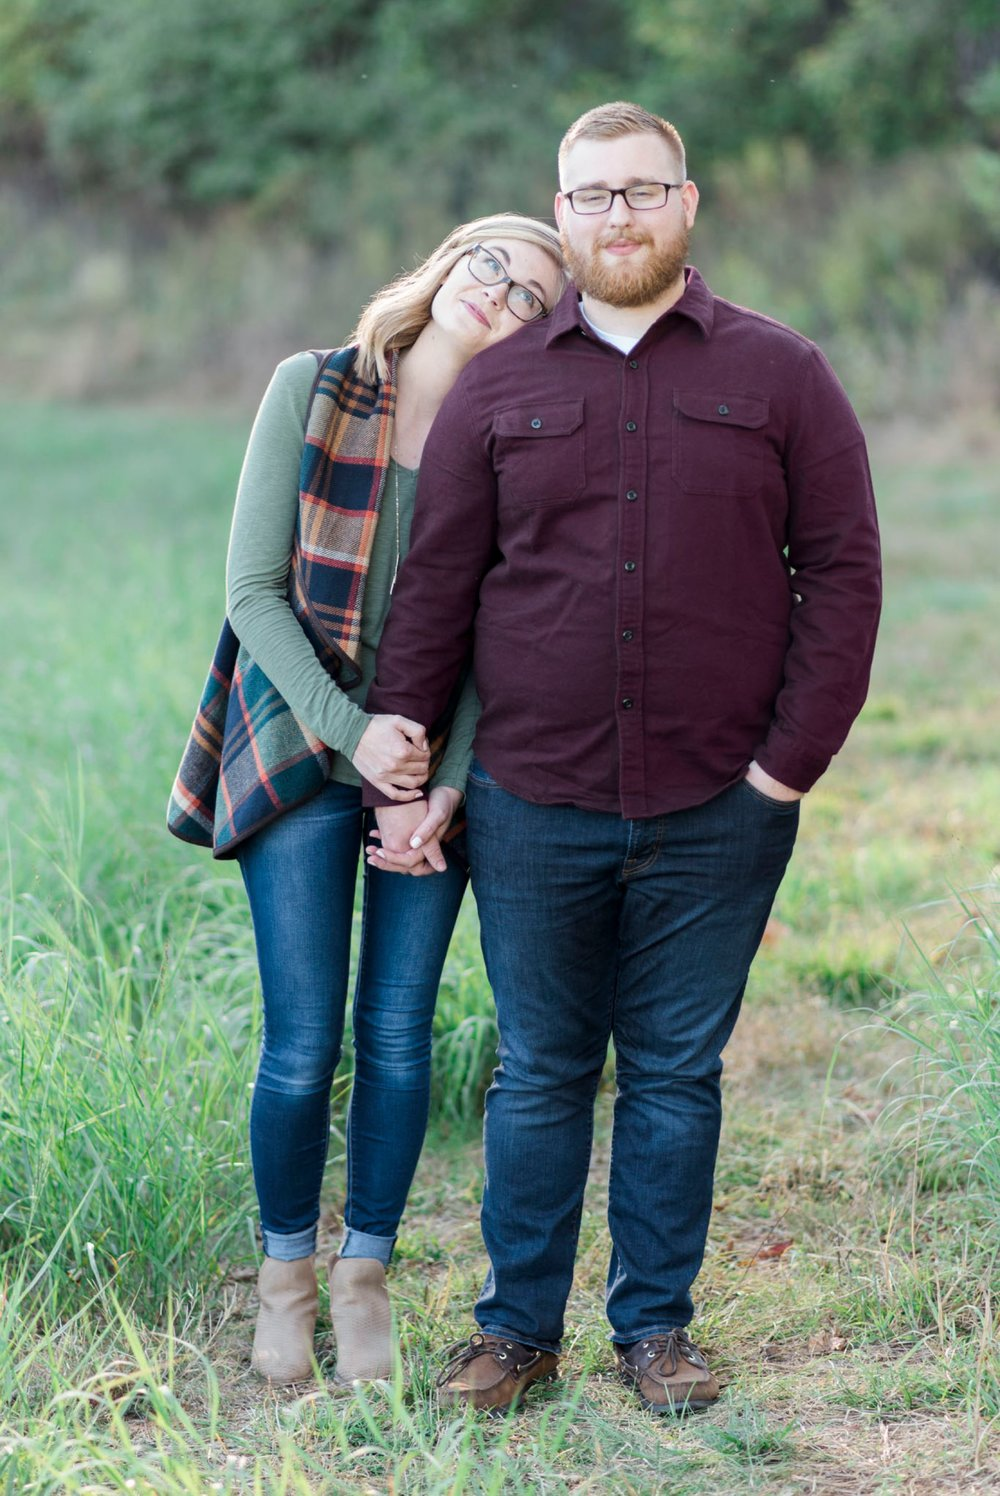 engagementsession_vaweddingphotographer 10.jpg